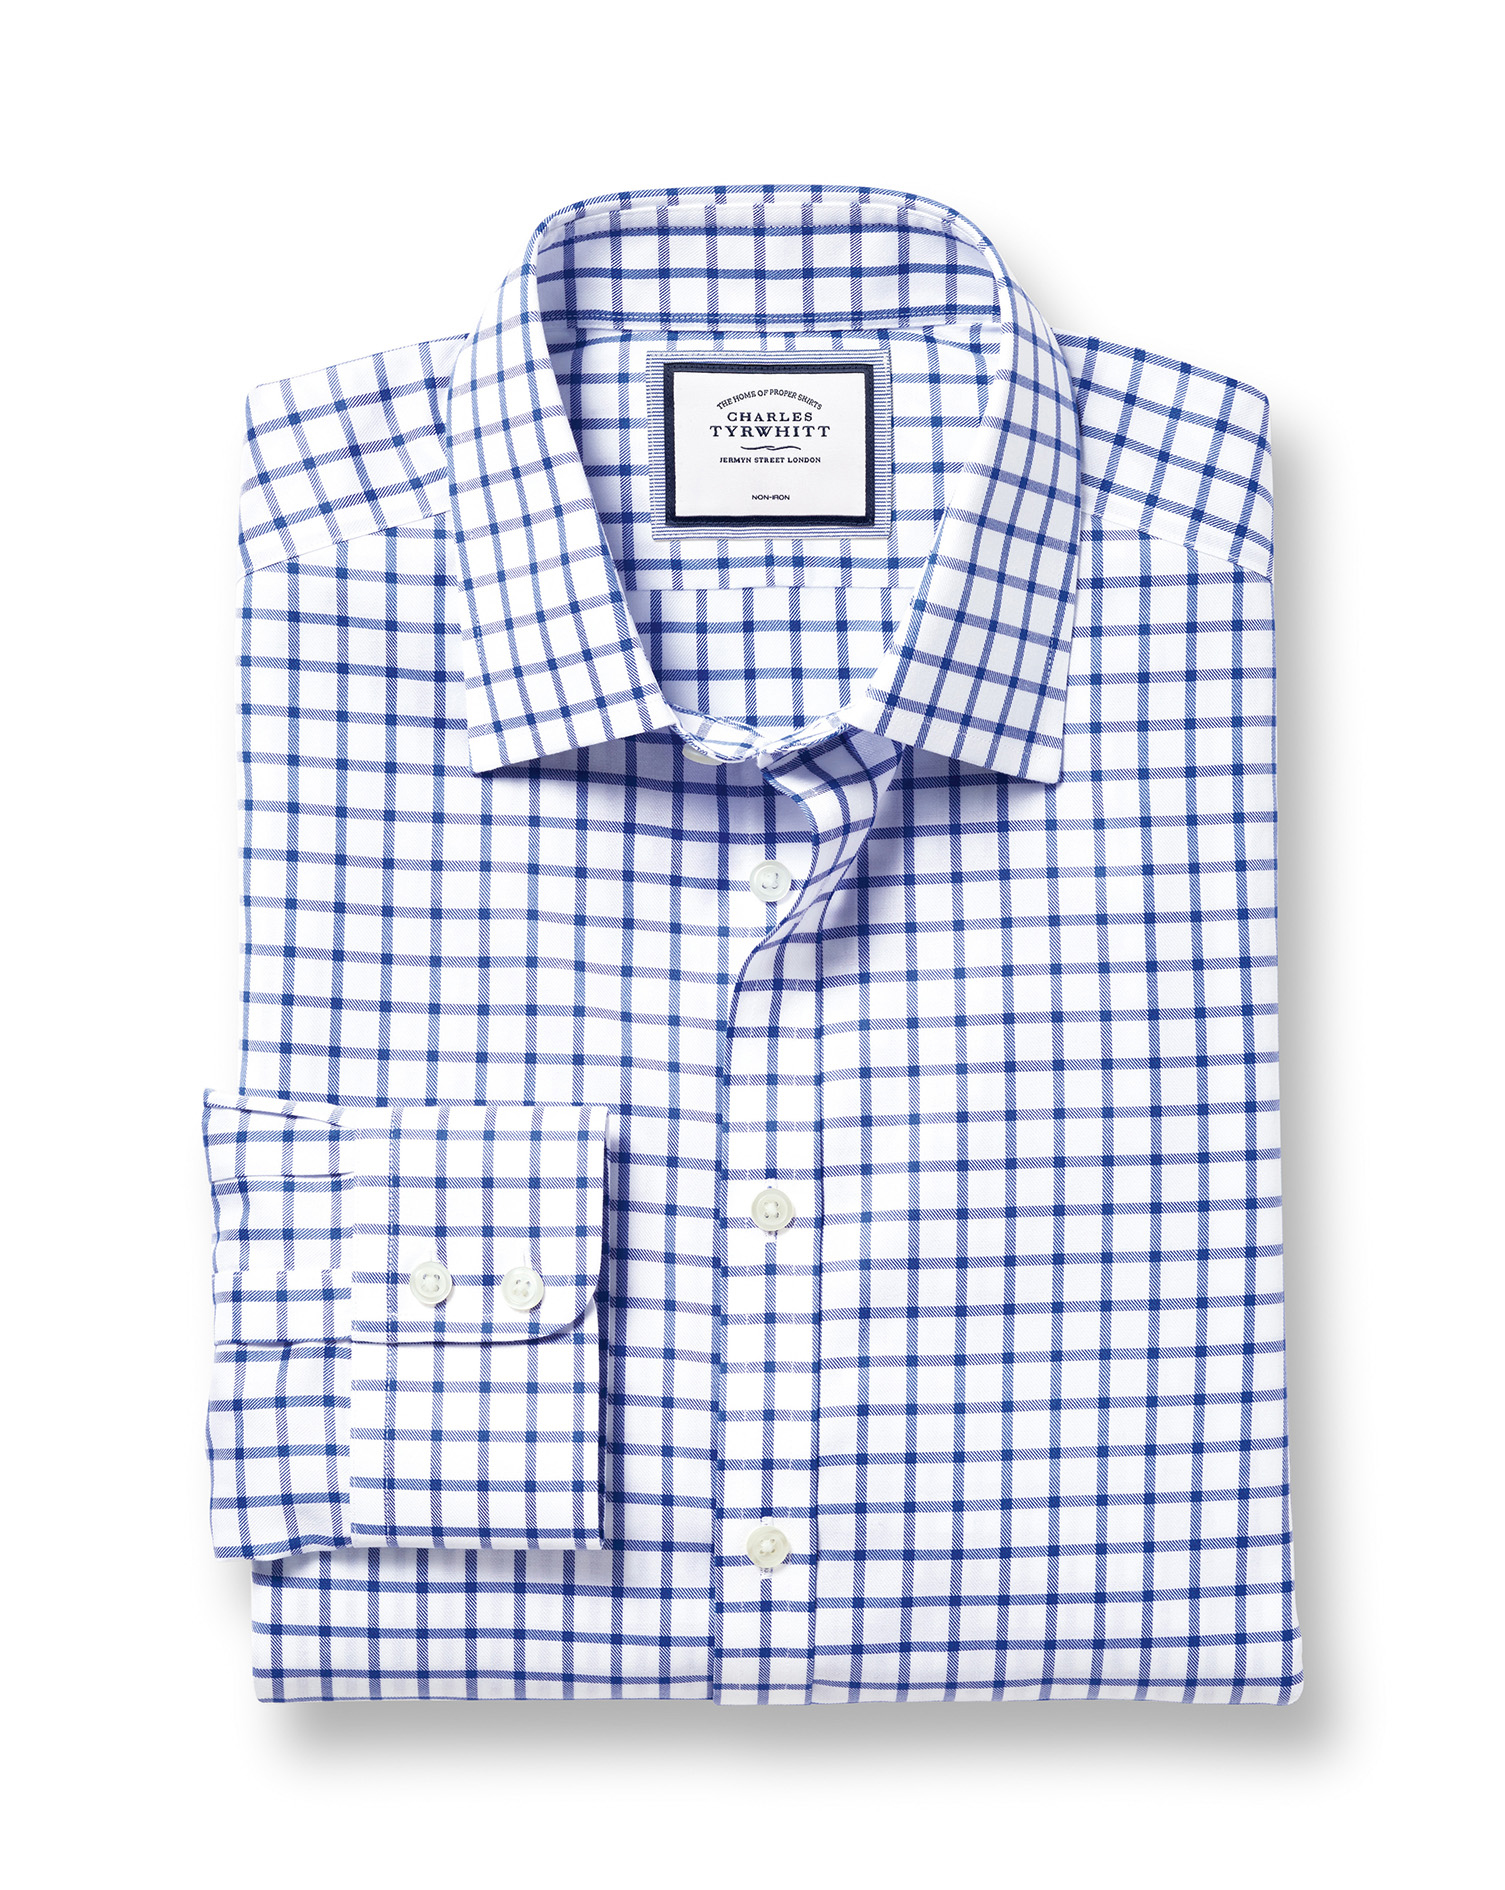 Extra Slim Fit Non-Iron Royal Blue Grid Check Twill Cotton Formal Shirt Single Cuff Size 16/38 by Ch